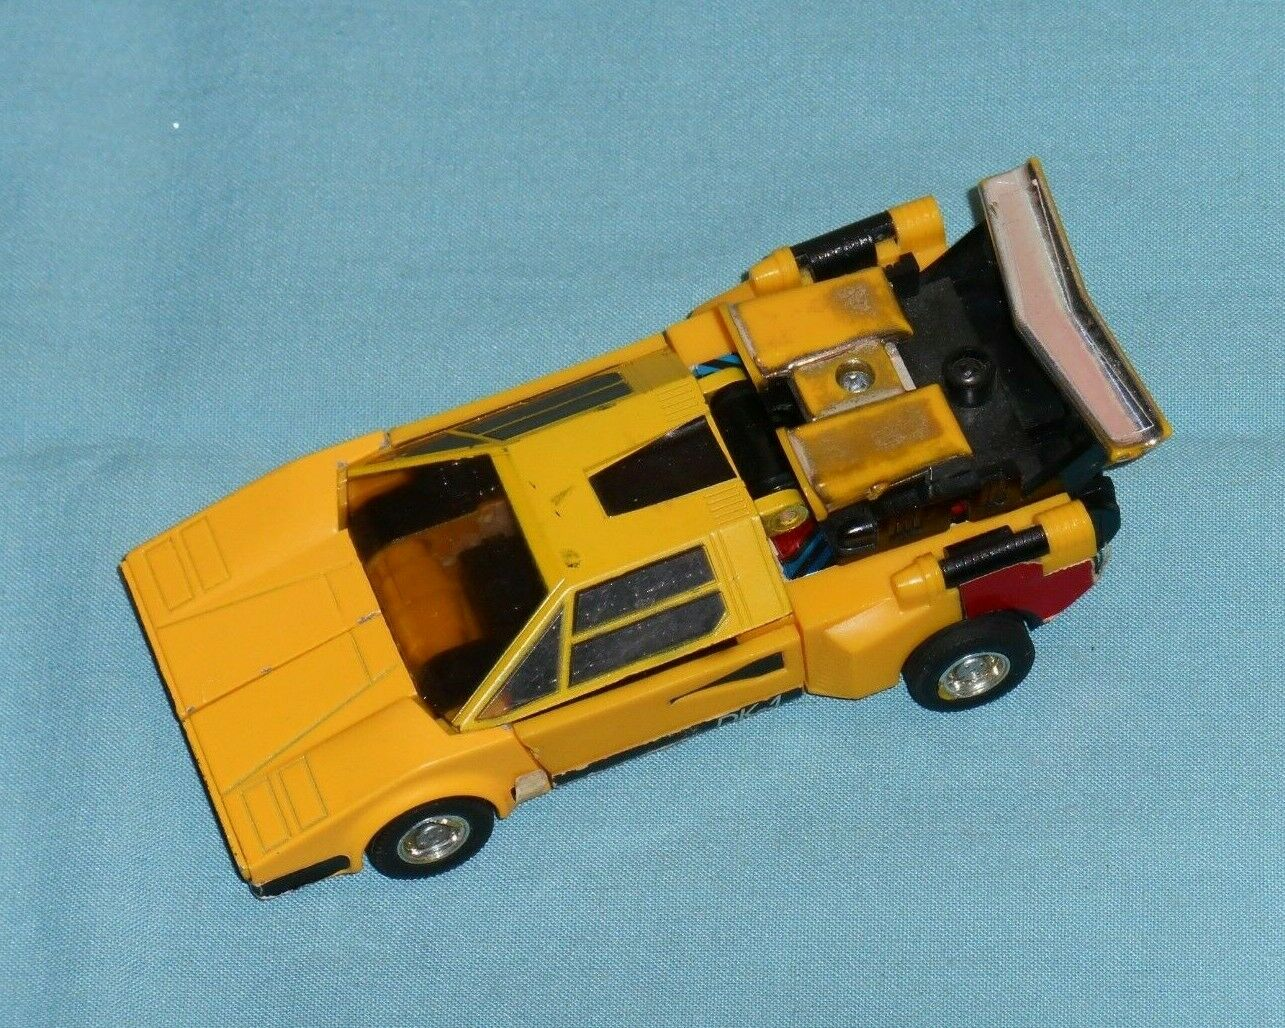 Original G1 Transformers autobot SUNSTREAKER figure only (early circle stamp)